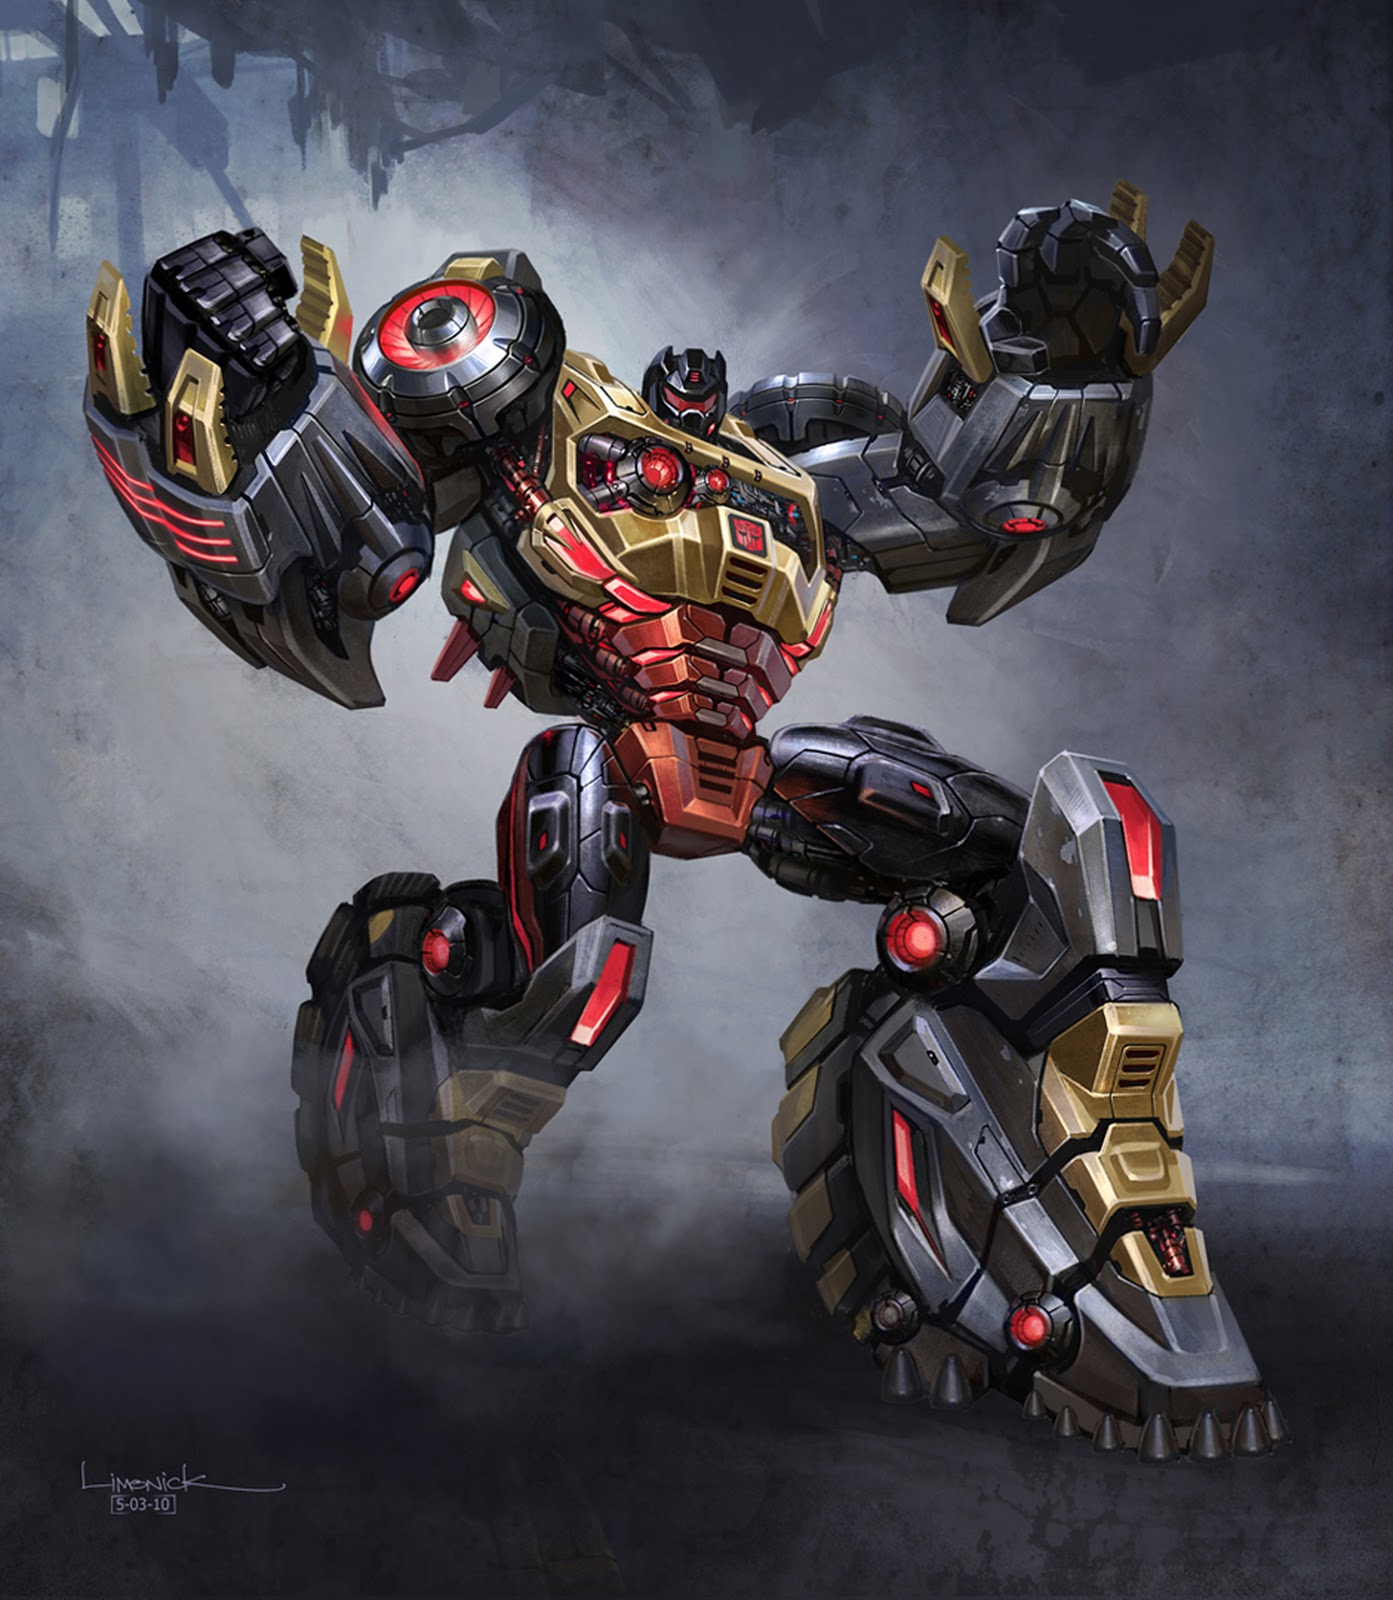 Transformers Fall Of Cybertron : grimlock wfc teletraan i the transformers wiki fandom powered by wikia ~ Medecine-chirurgie-esthetiques.com Avis de Voitures